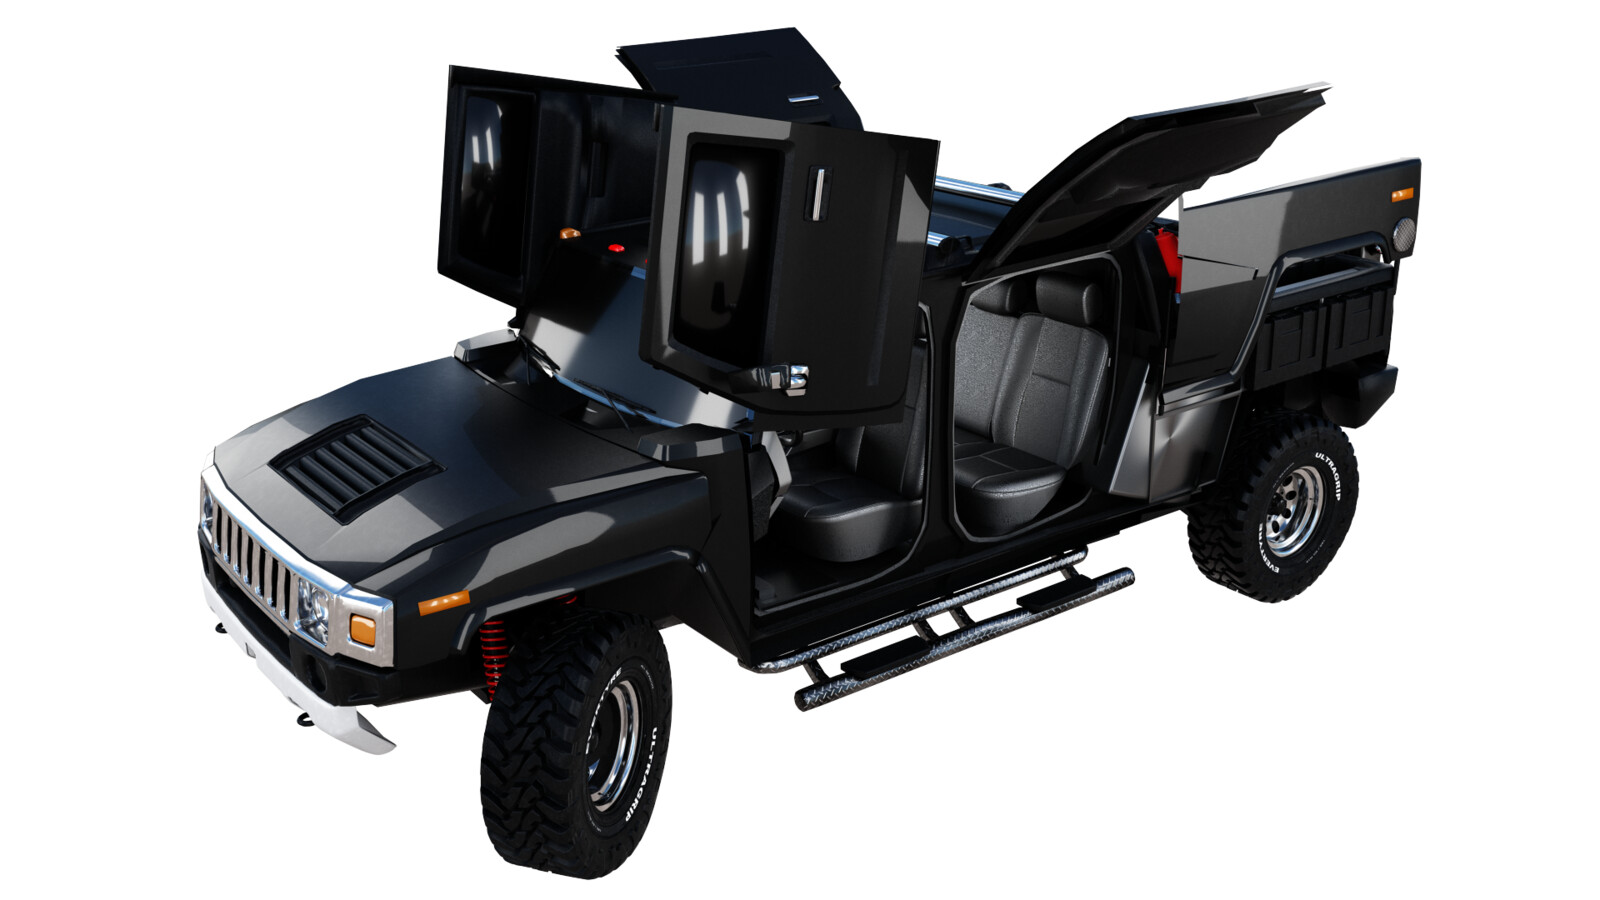 Hummer H3T perspective